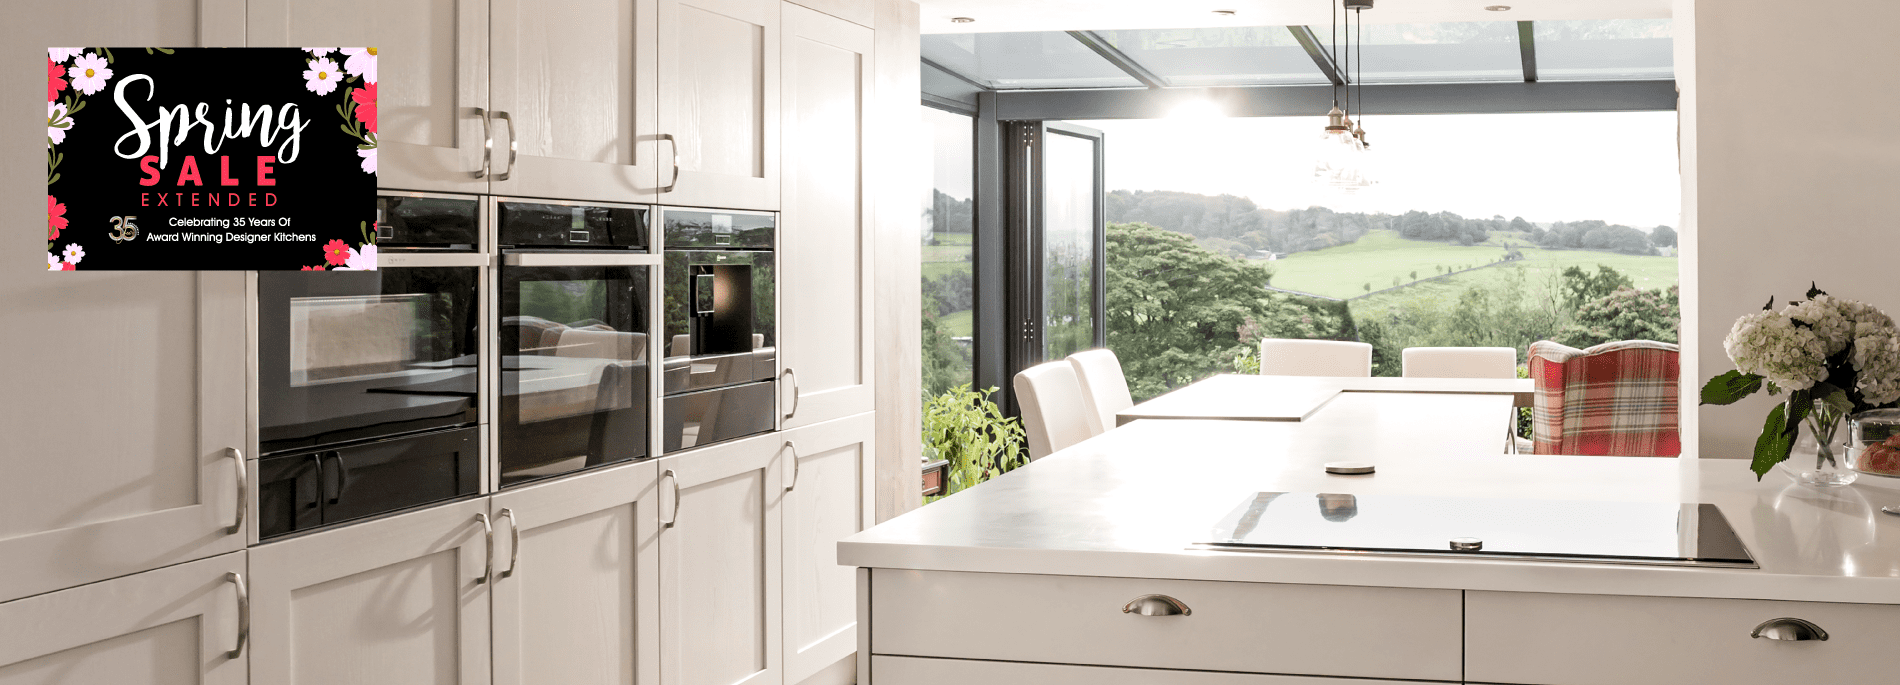 Get Free Fitting on your dream kitchen as part of our Spring Sale!